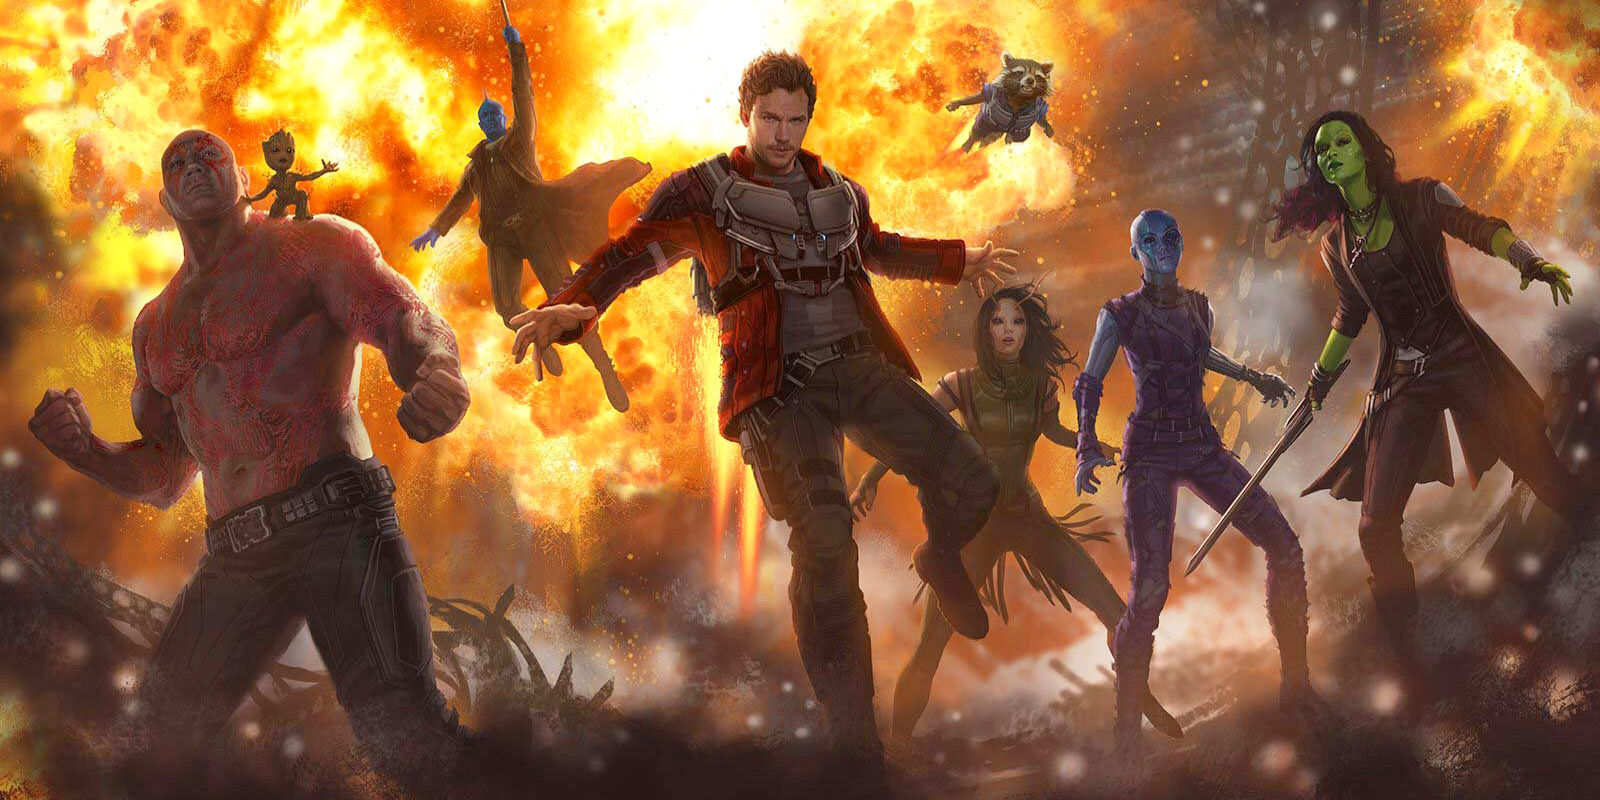 James Gunn Will Write, Direct Guardians of the Galaxy Vol. 3